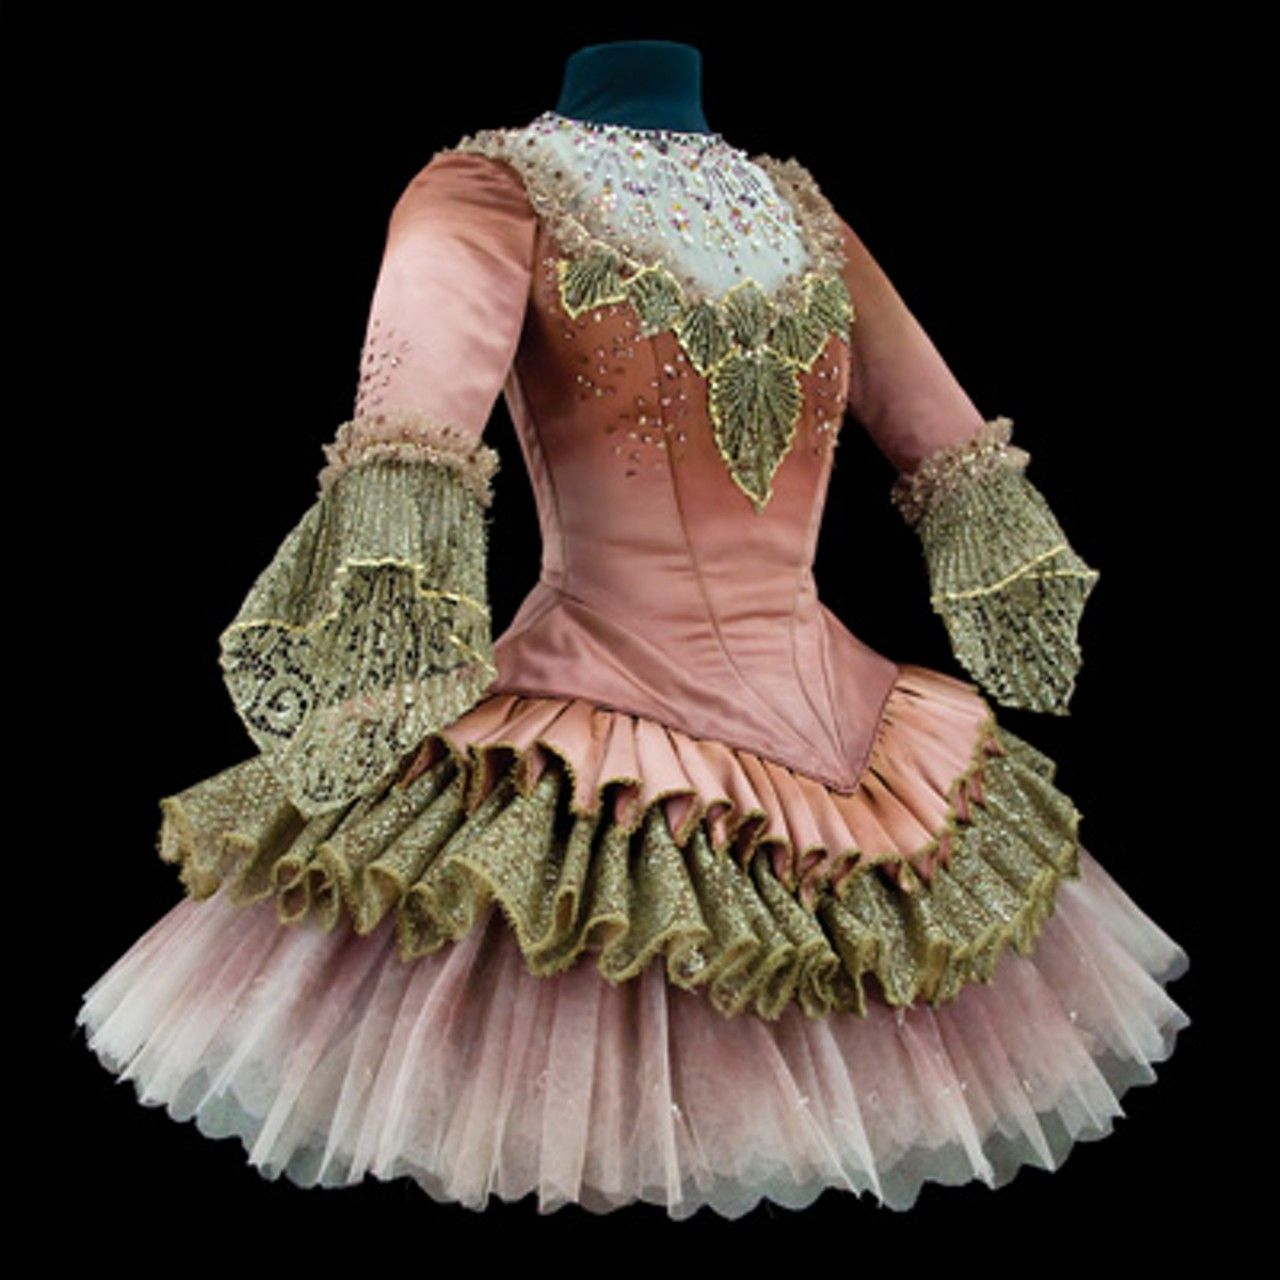 Costume for the Lilac Fairy Queen in Sleeping Beauty, Teatro alla Scalla, Milan, 1966.